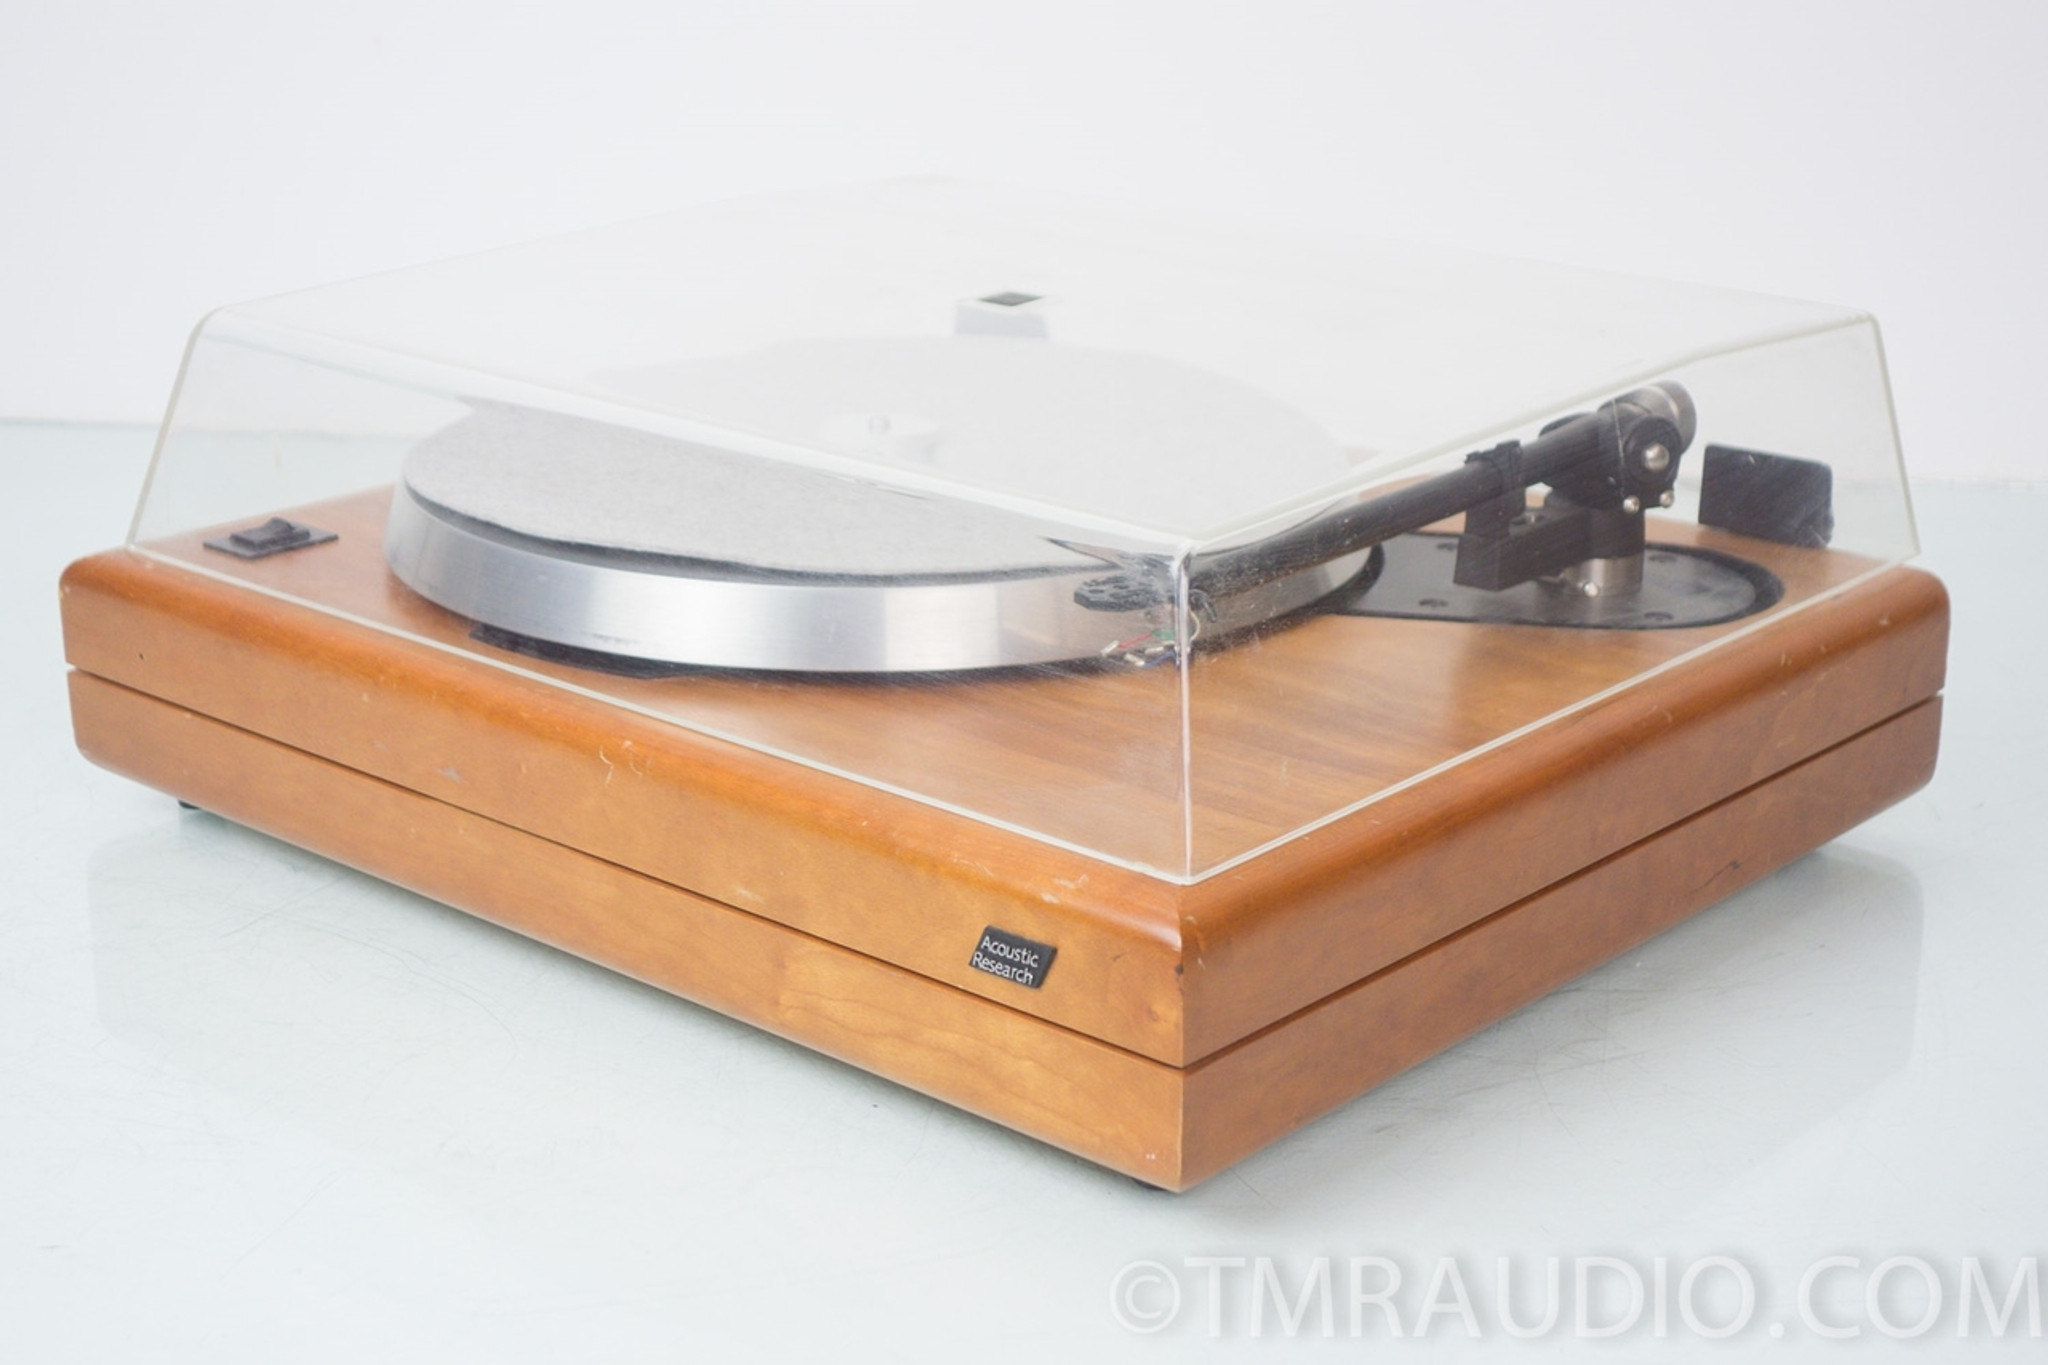 AR Teledyne Acoustic Research ES-1 Vintage Turntable - The